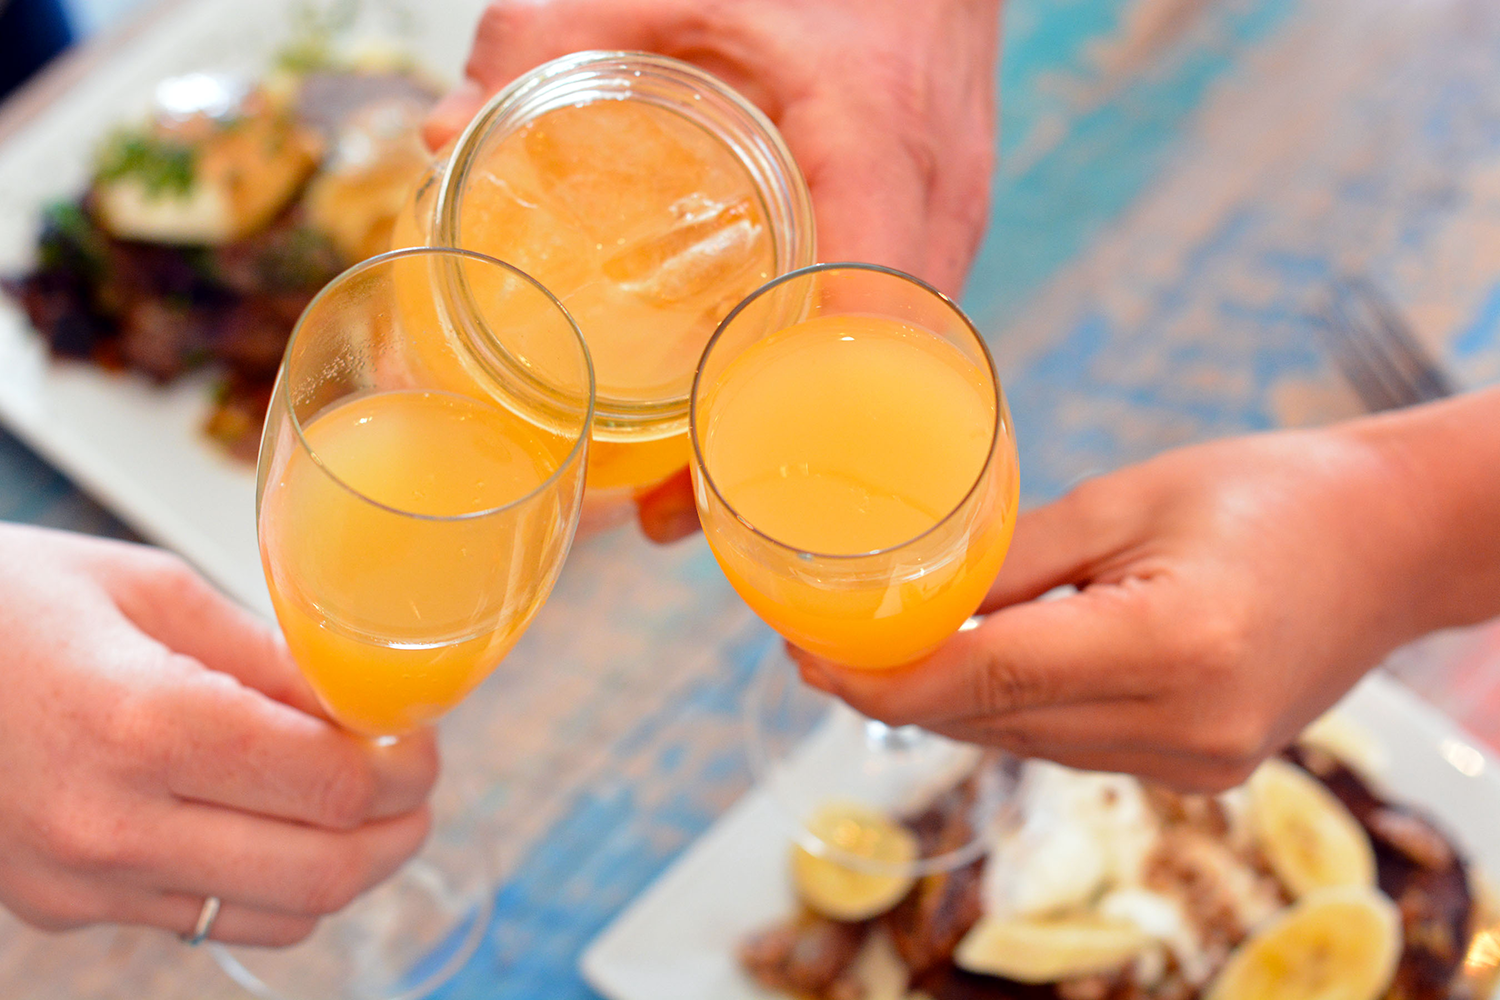 Rum Punch and Mimosa are both available during our RHUM Punch Brunch! Call for details.